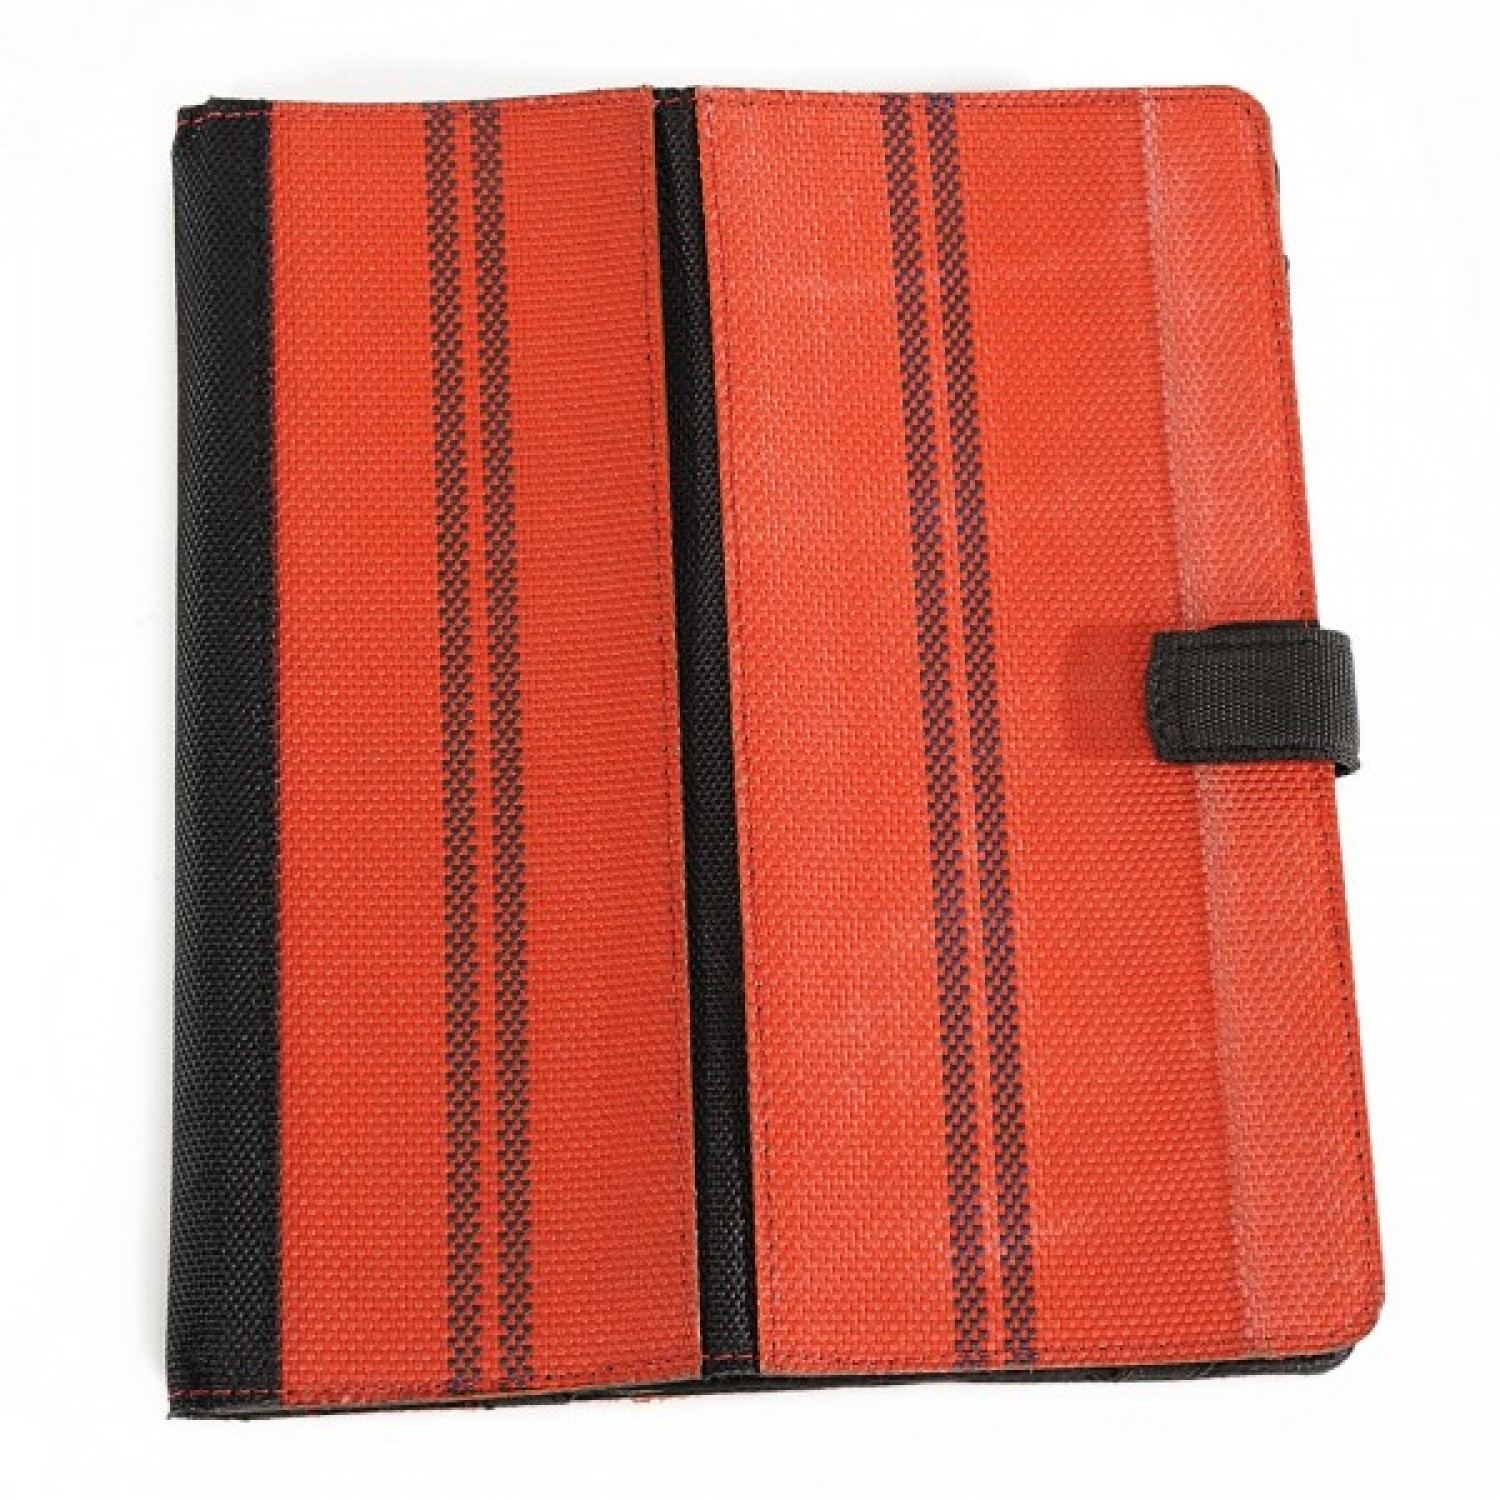 Rita - iPad case in upcycled fire hose fabric | Marron Rouge